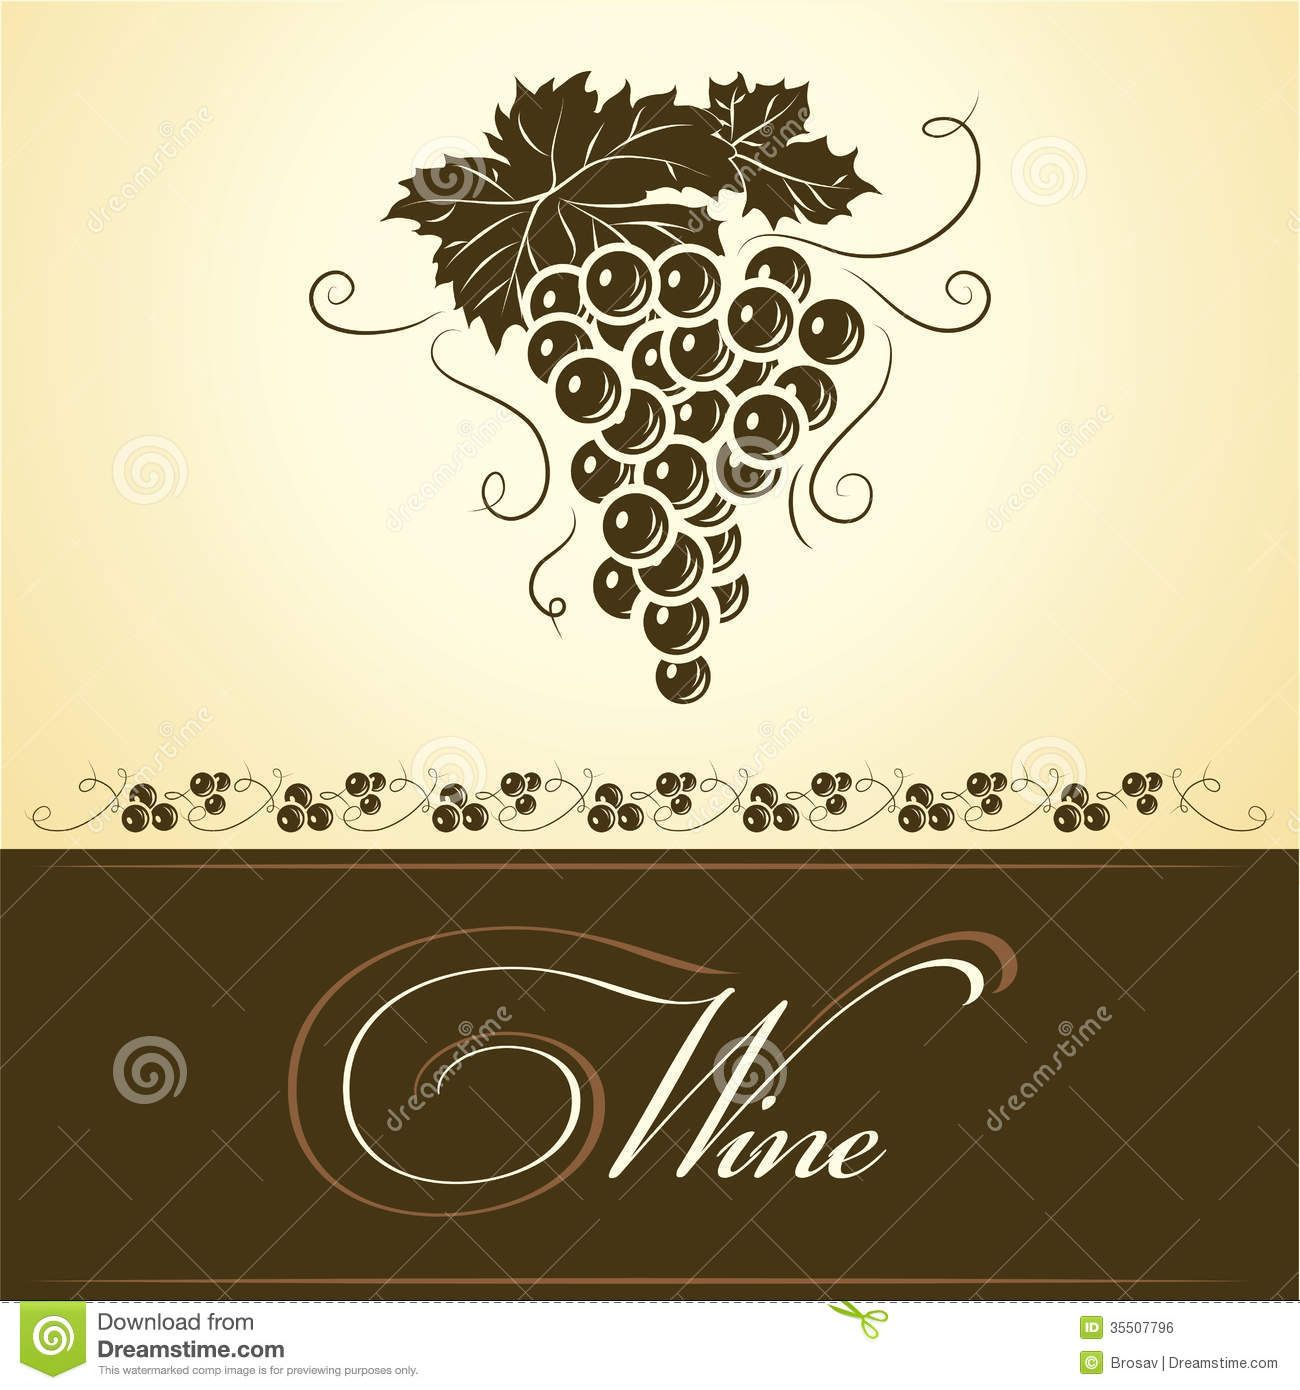 wine labels Google Search wine anyone Pinterest